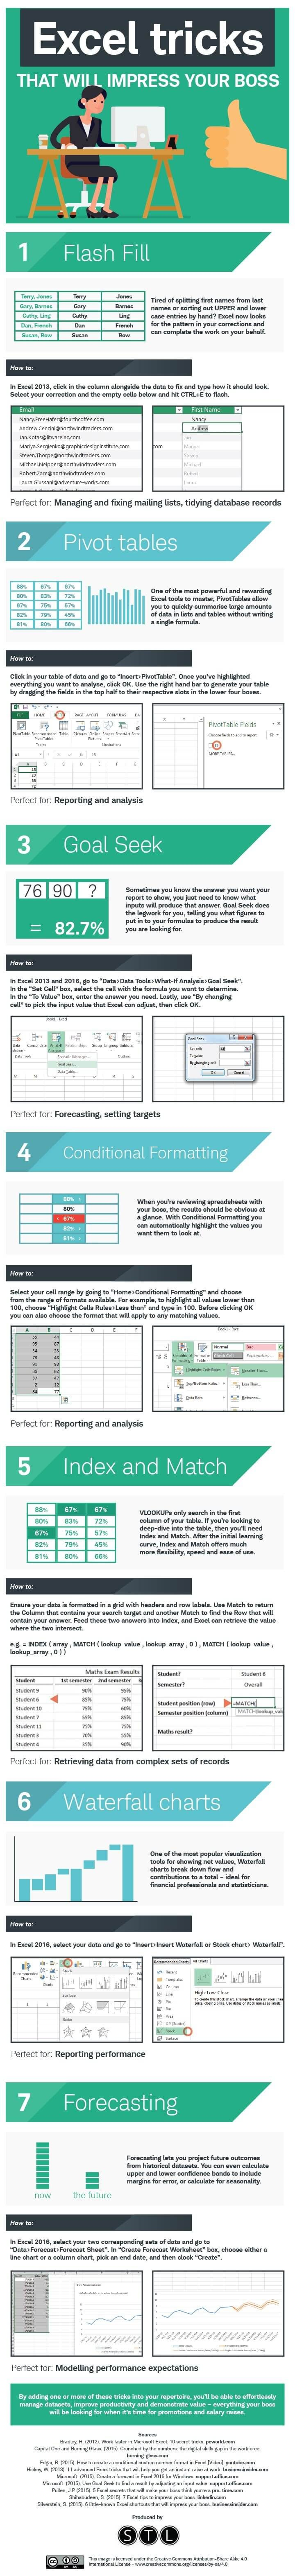 Excel training tricks that will impress your boss